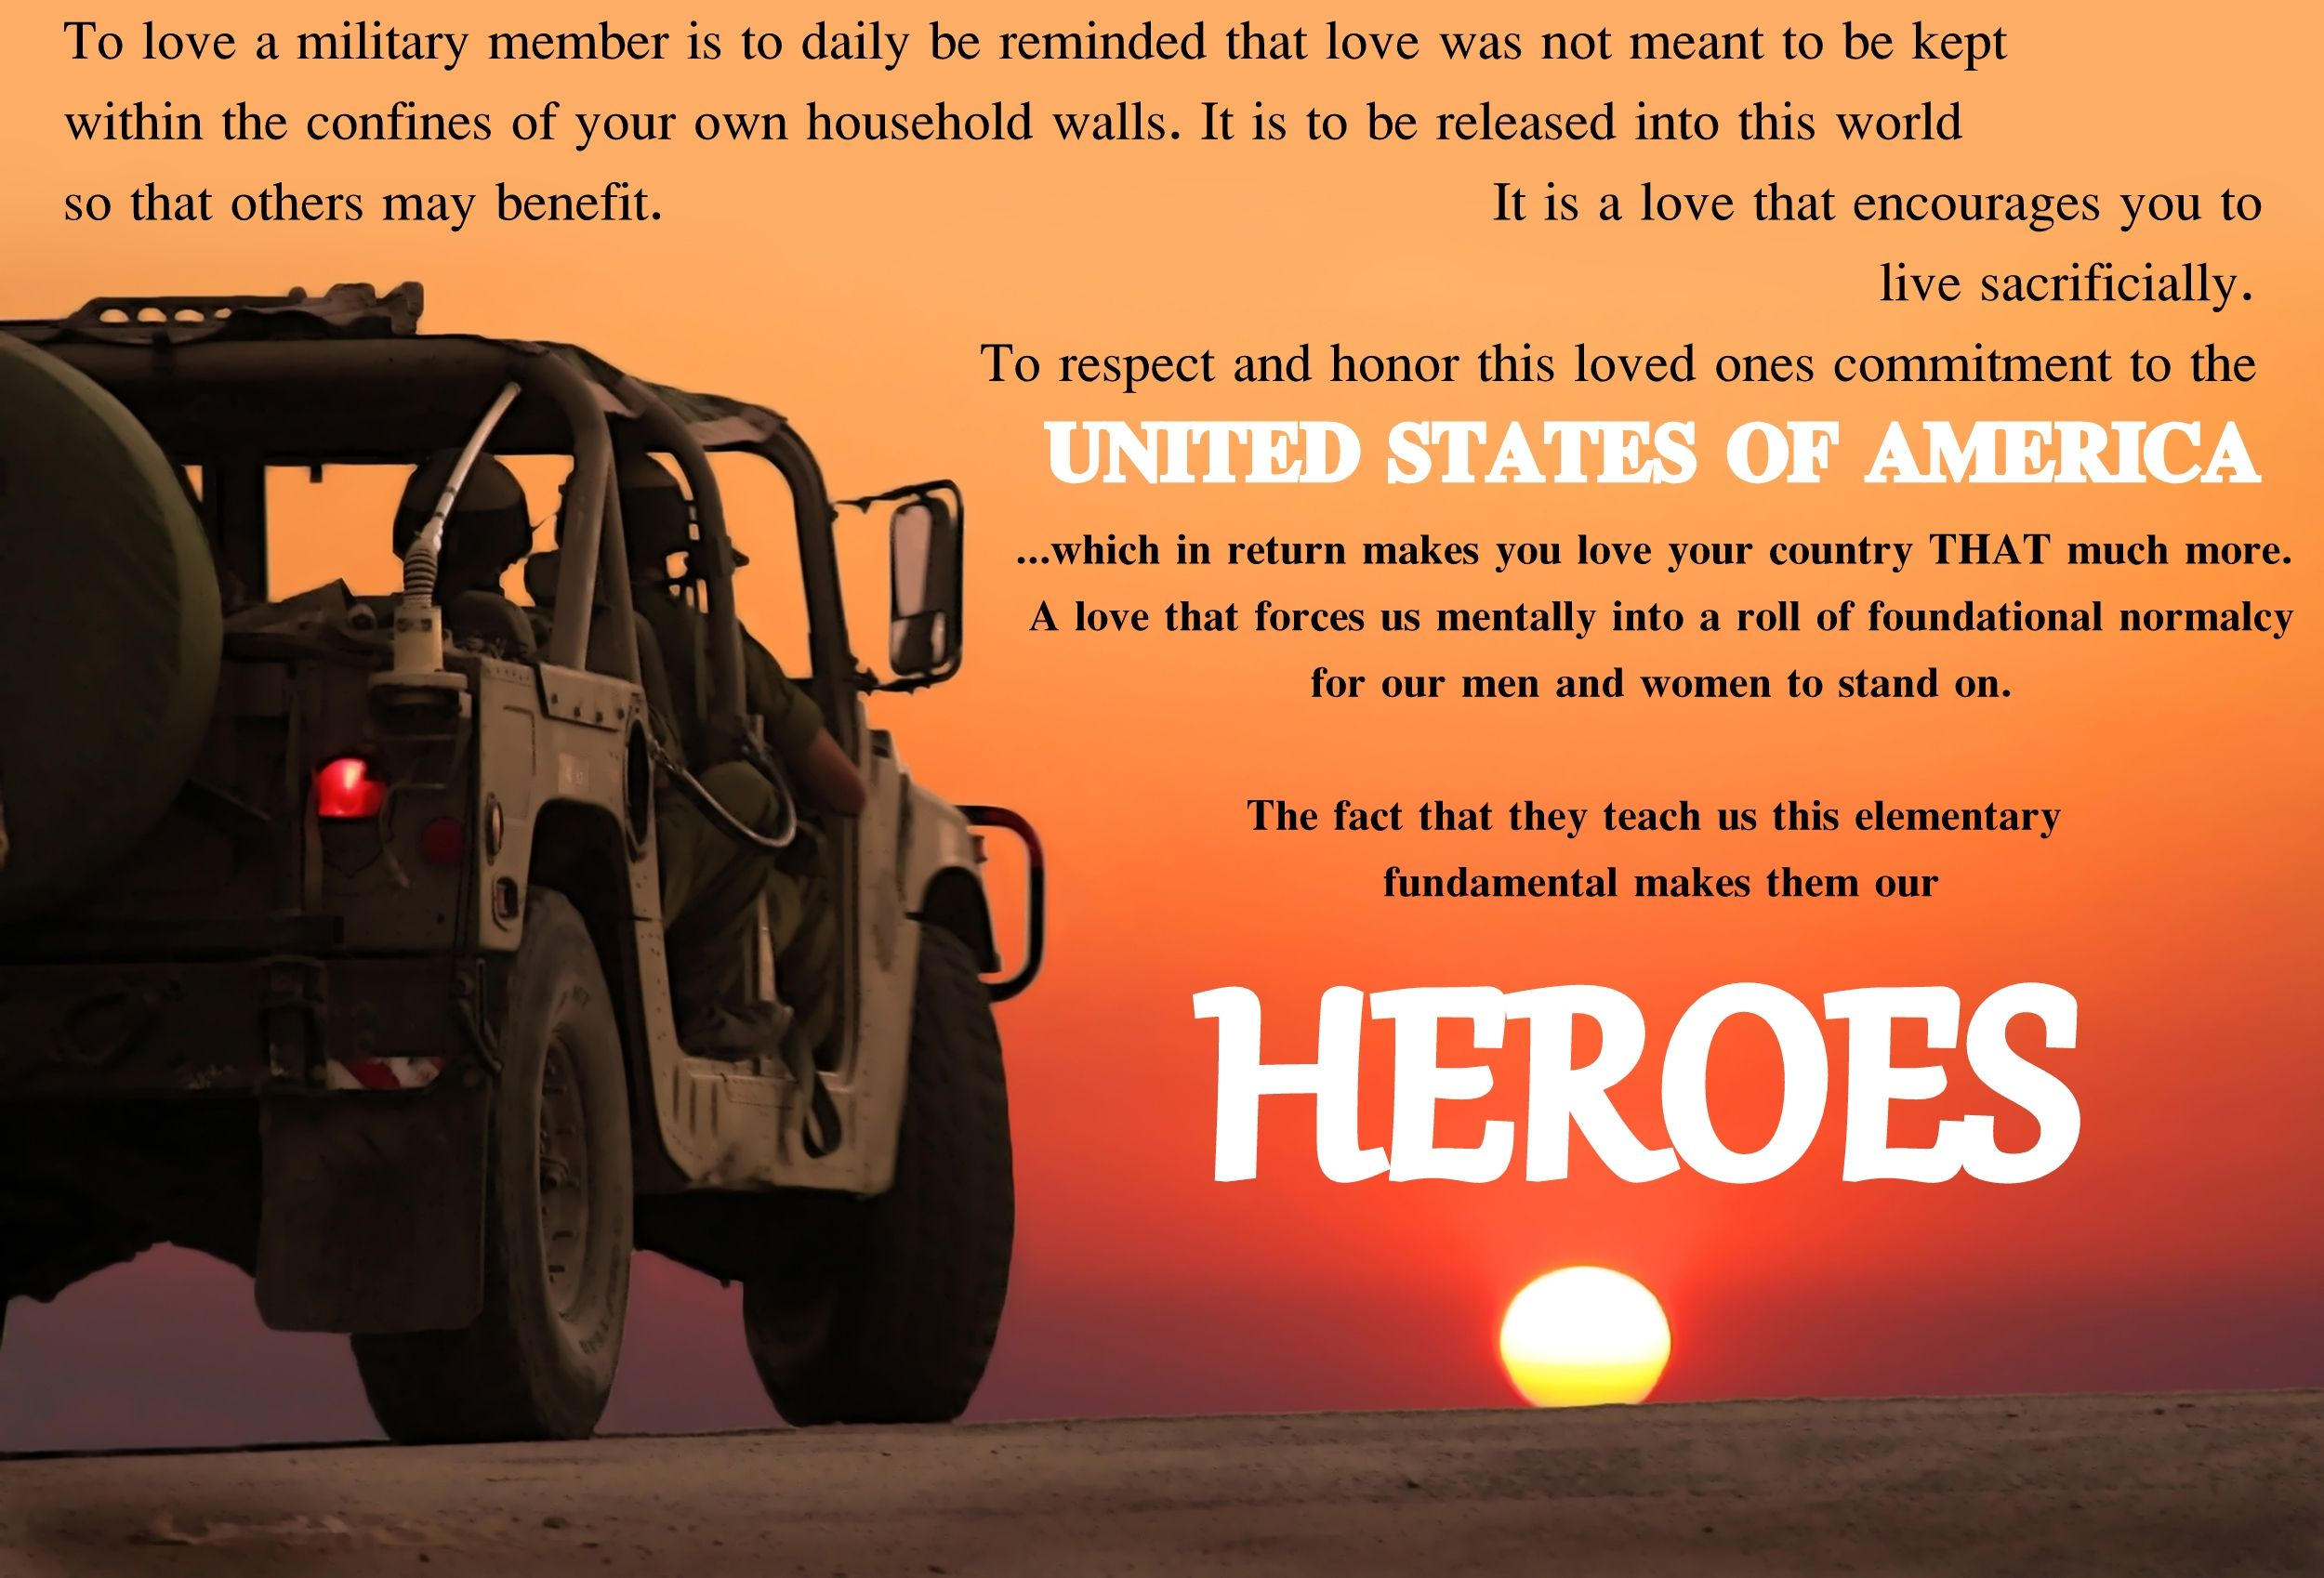 military hero quote air force army navy marines